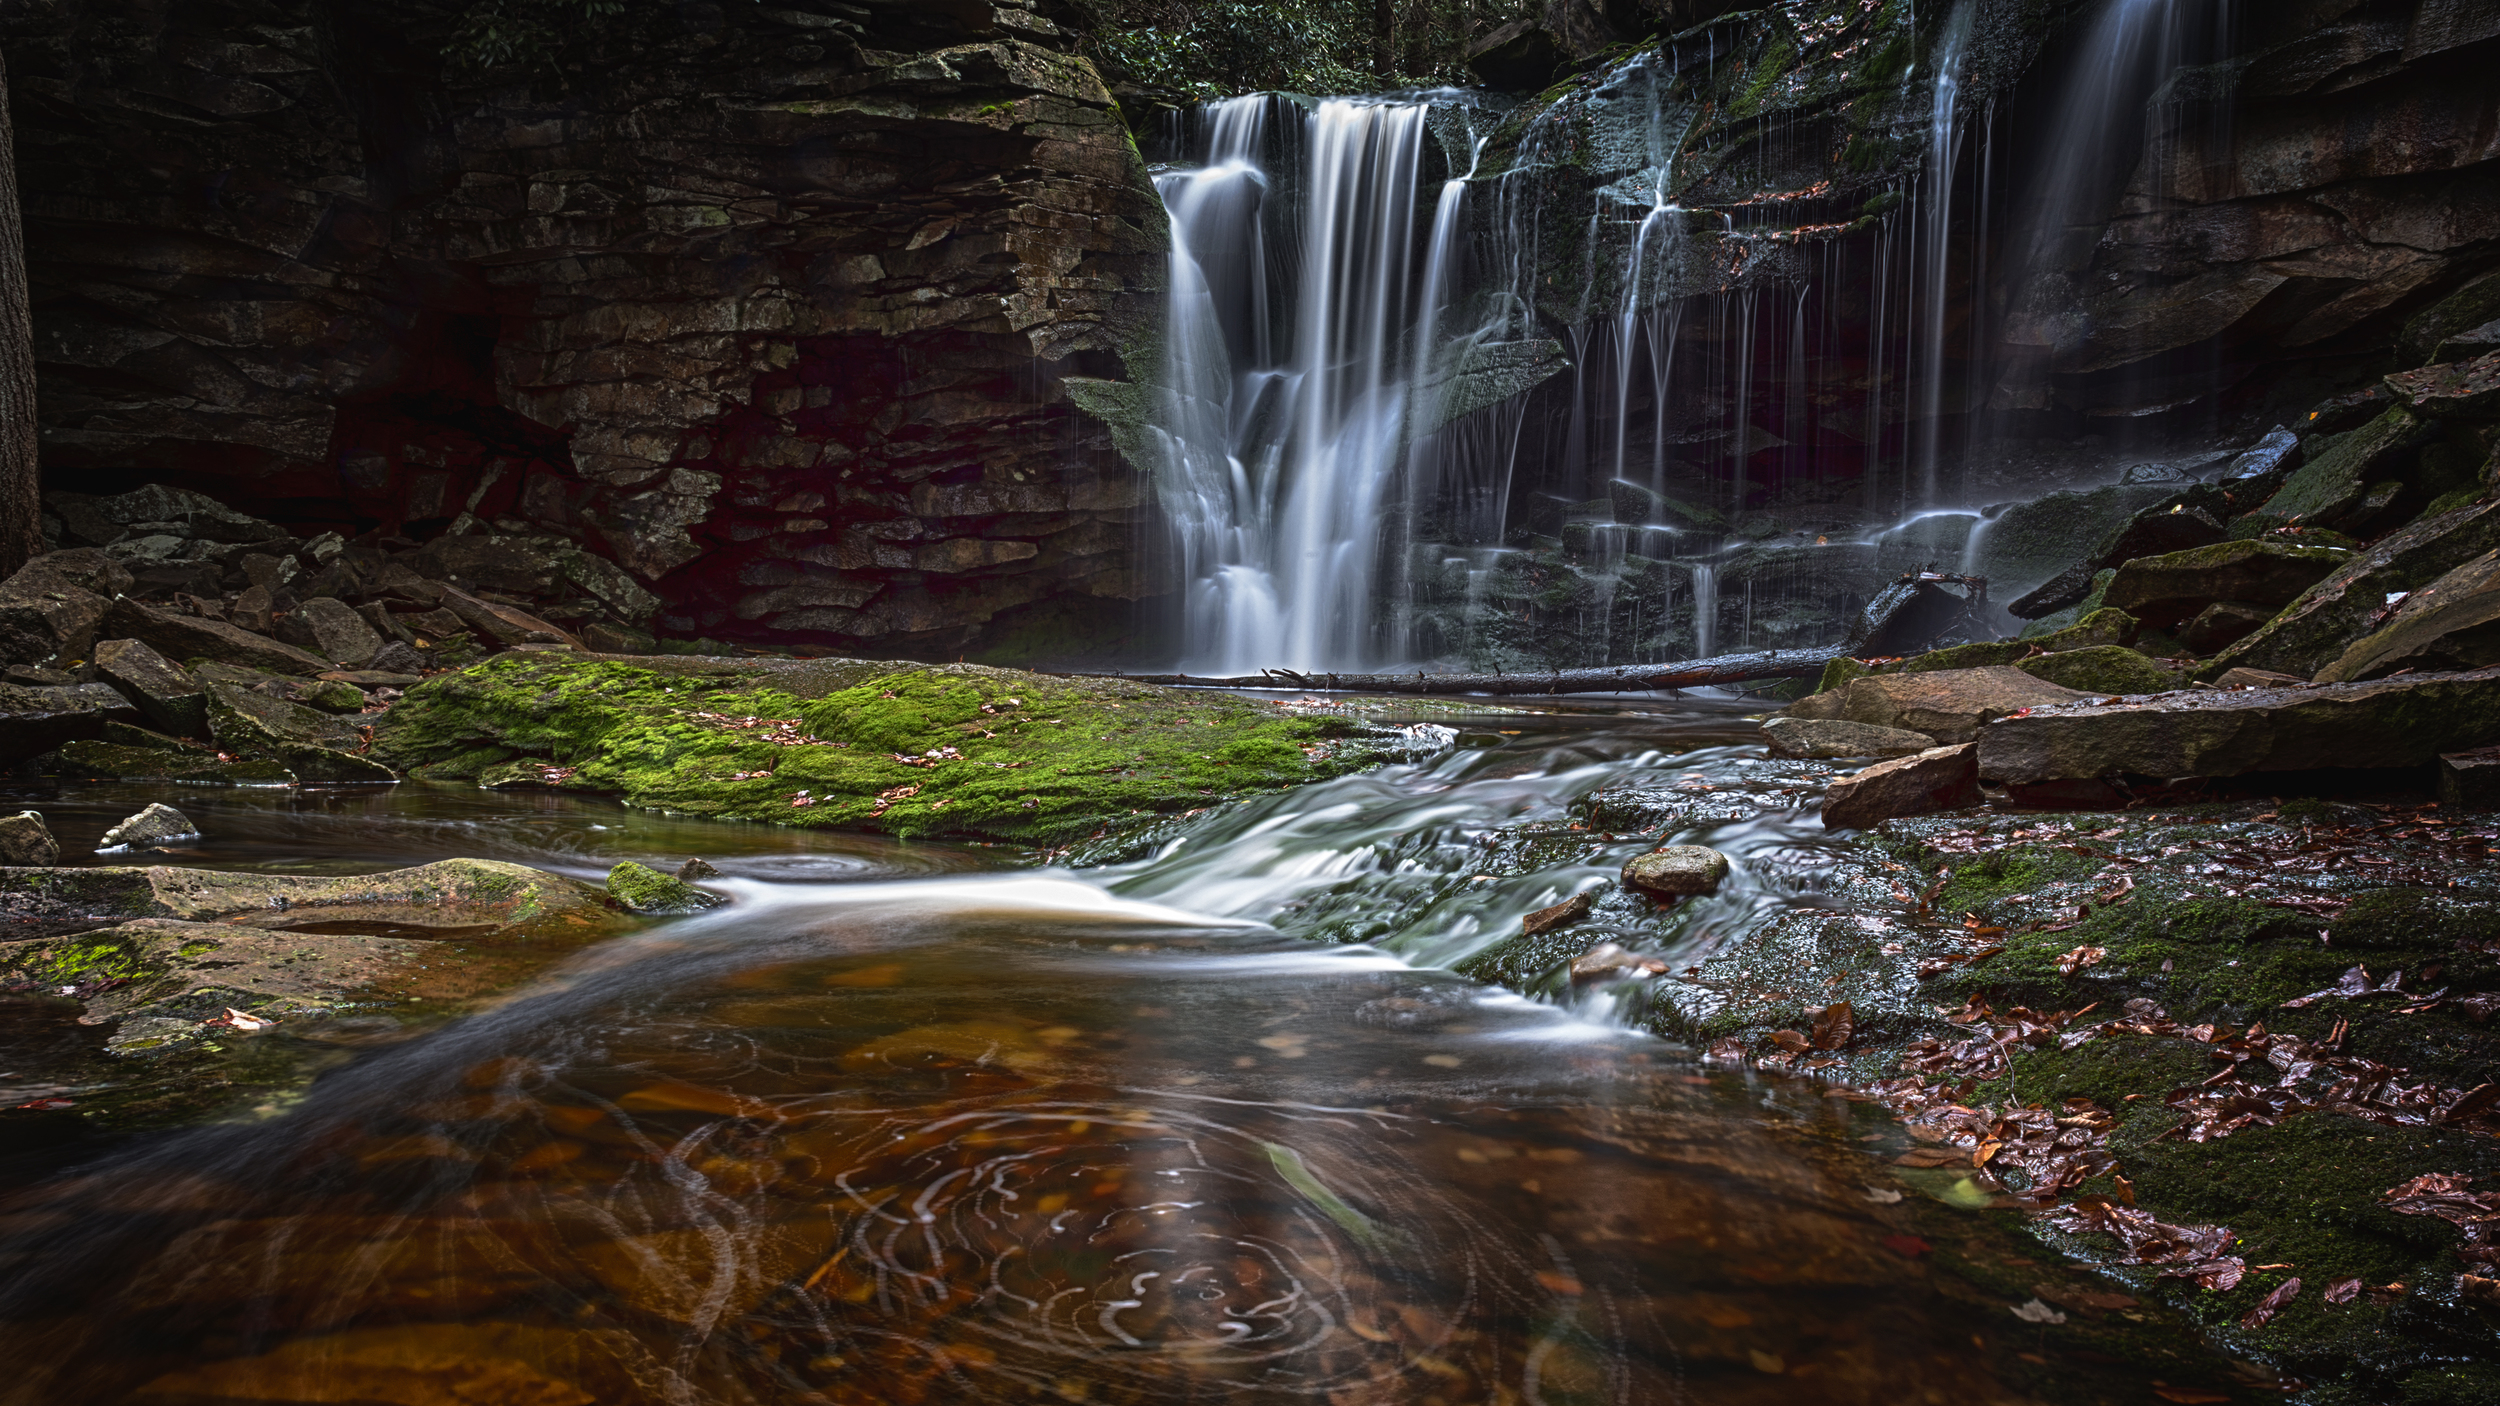 This photograph of Elakala Falls, West Virginia, is a finalist for the Photoshop World Guru Awards.